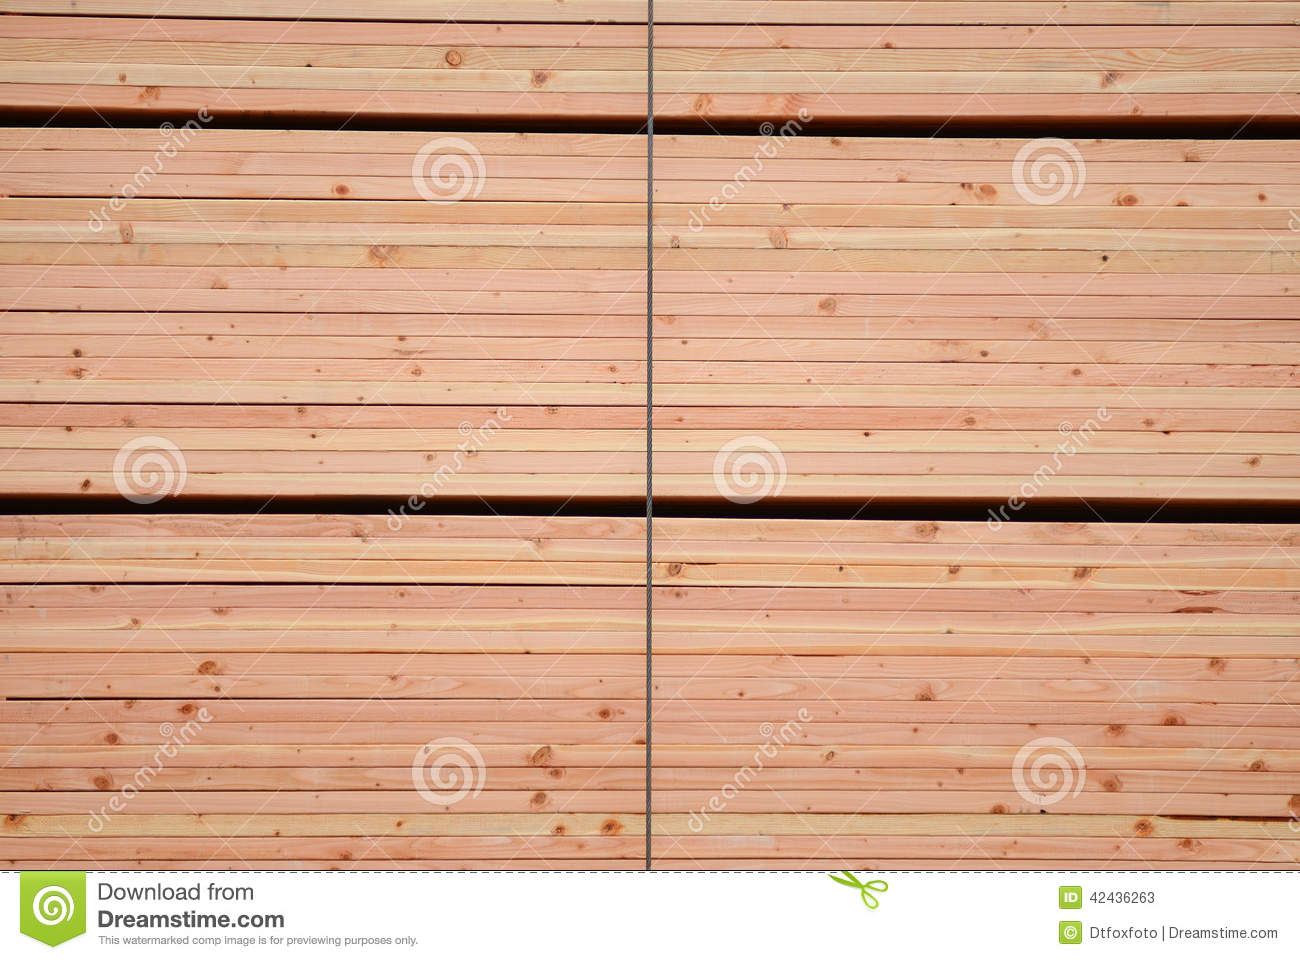 Long lumber stock photo image 42436263 for Longest decking boards